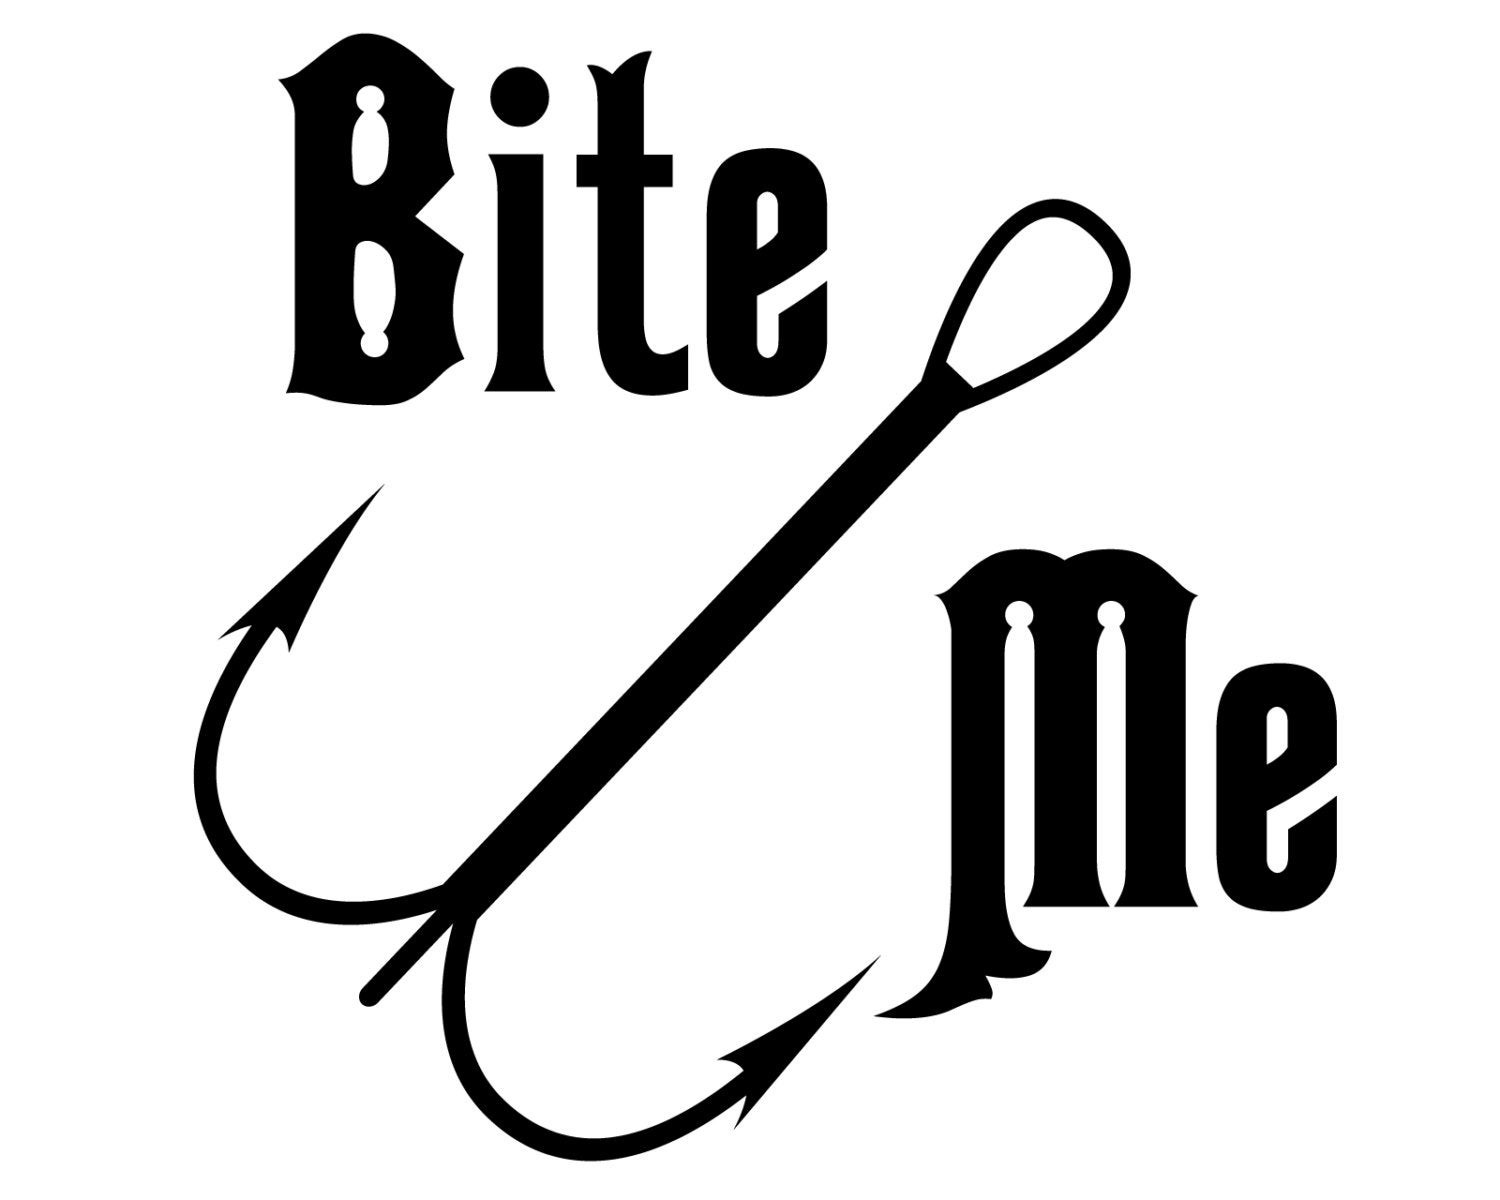 bite me fishing decal fish lover sticker outdoorsman fishing catfish clipart on hook catfish clip art images